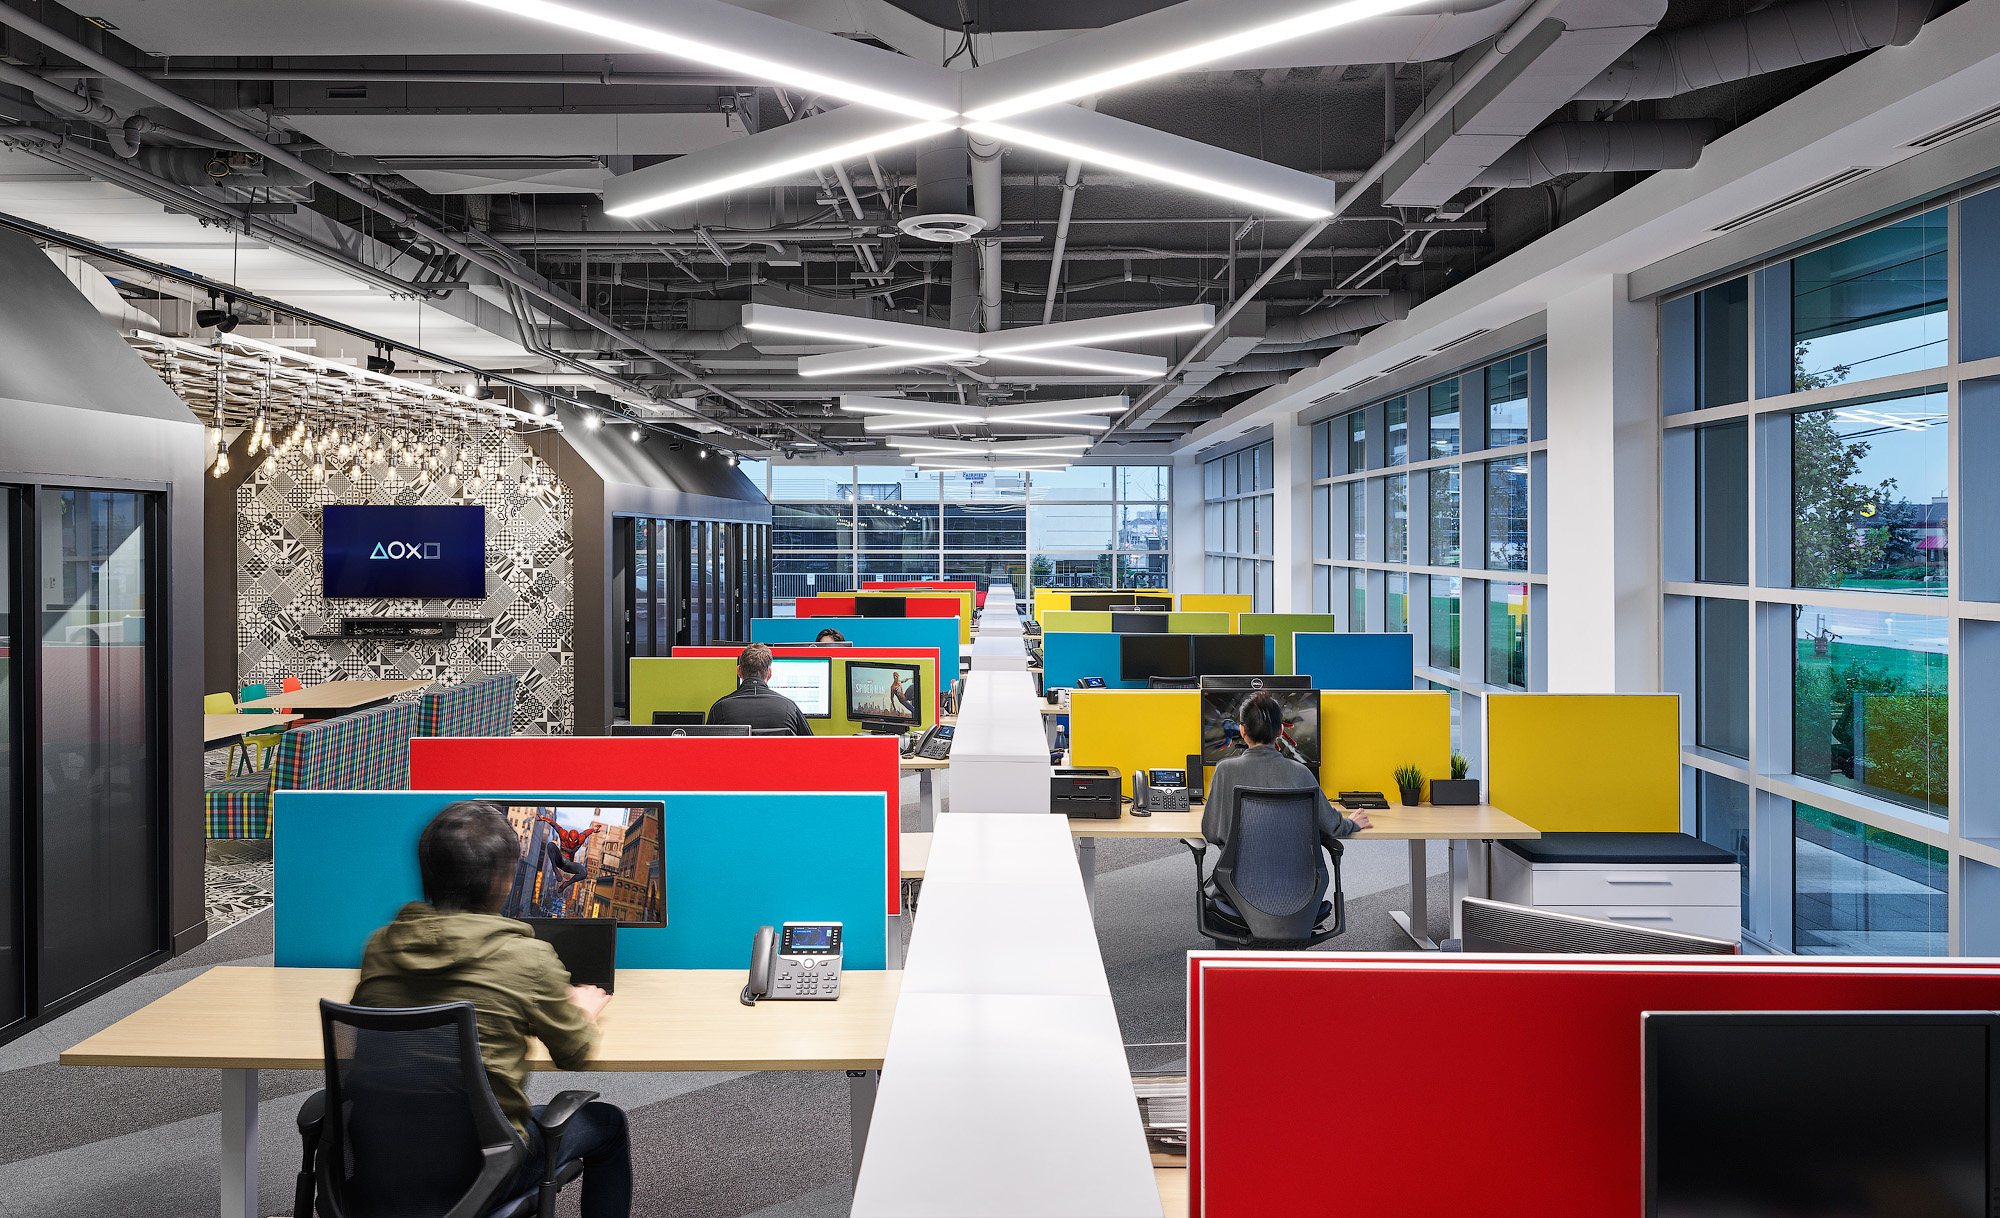 Sony SIE Toronto office. Workstations with red, blue, and yellow partitions next to large window wall